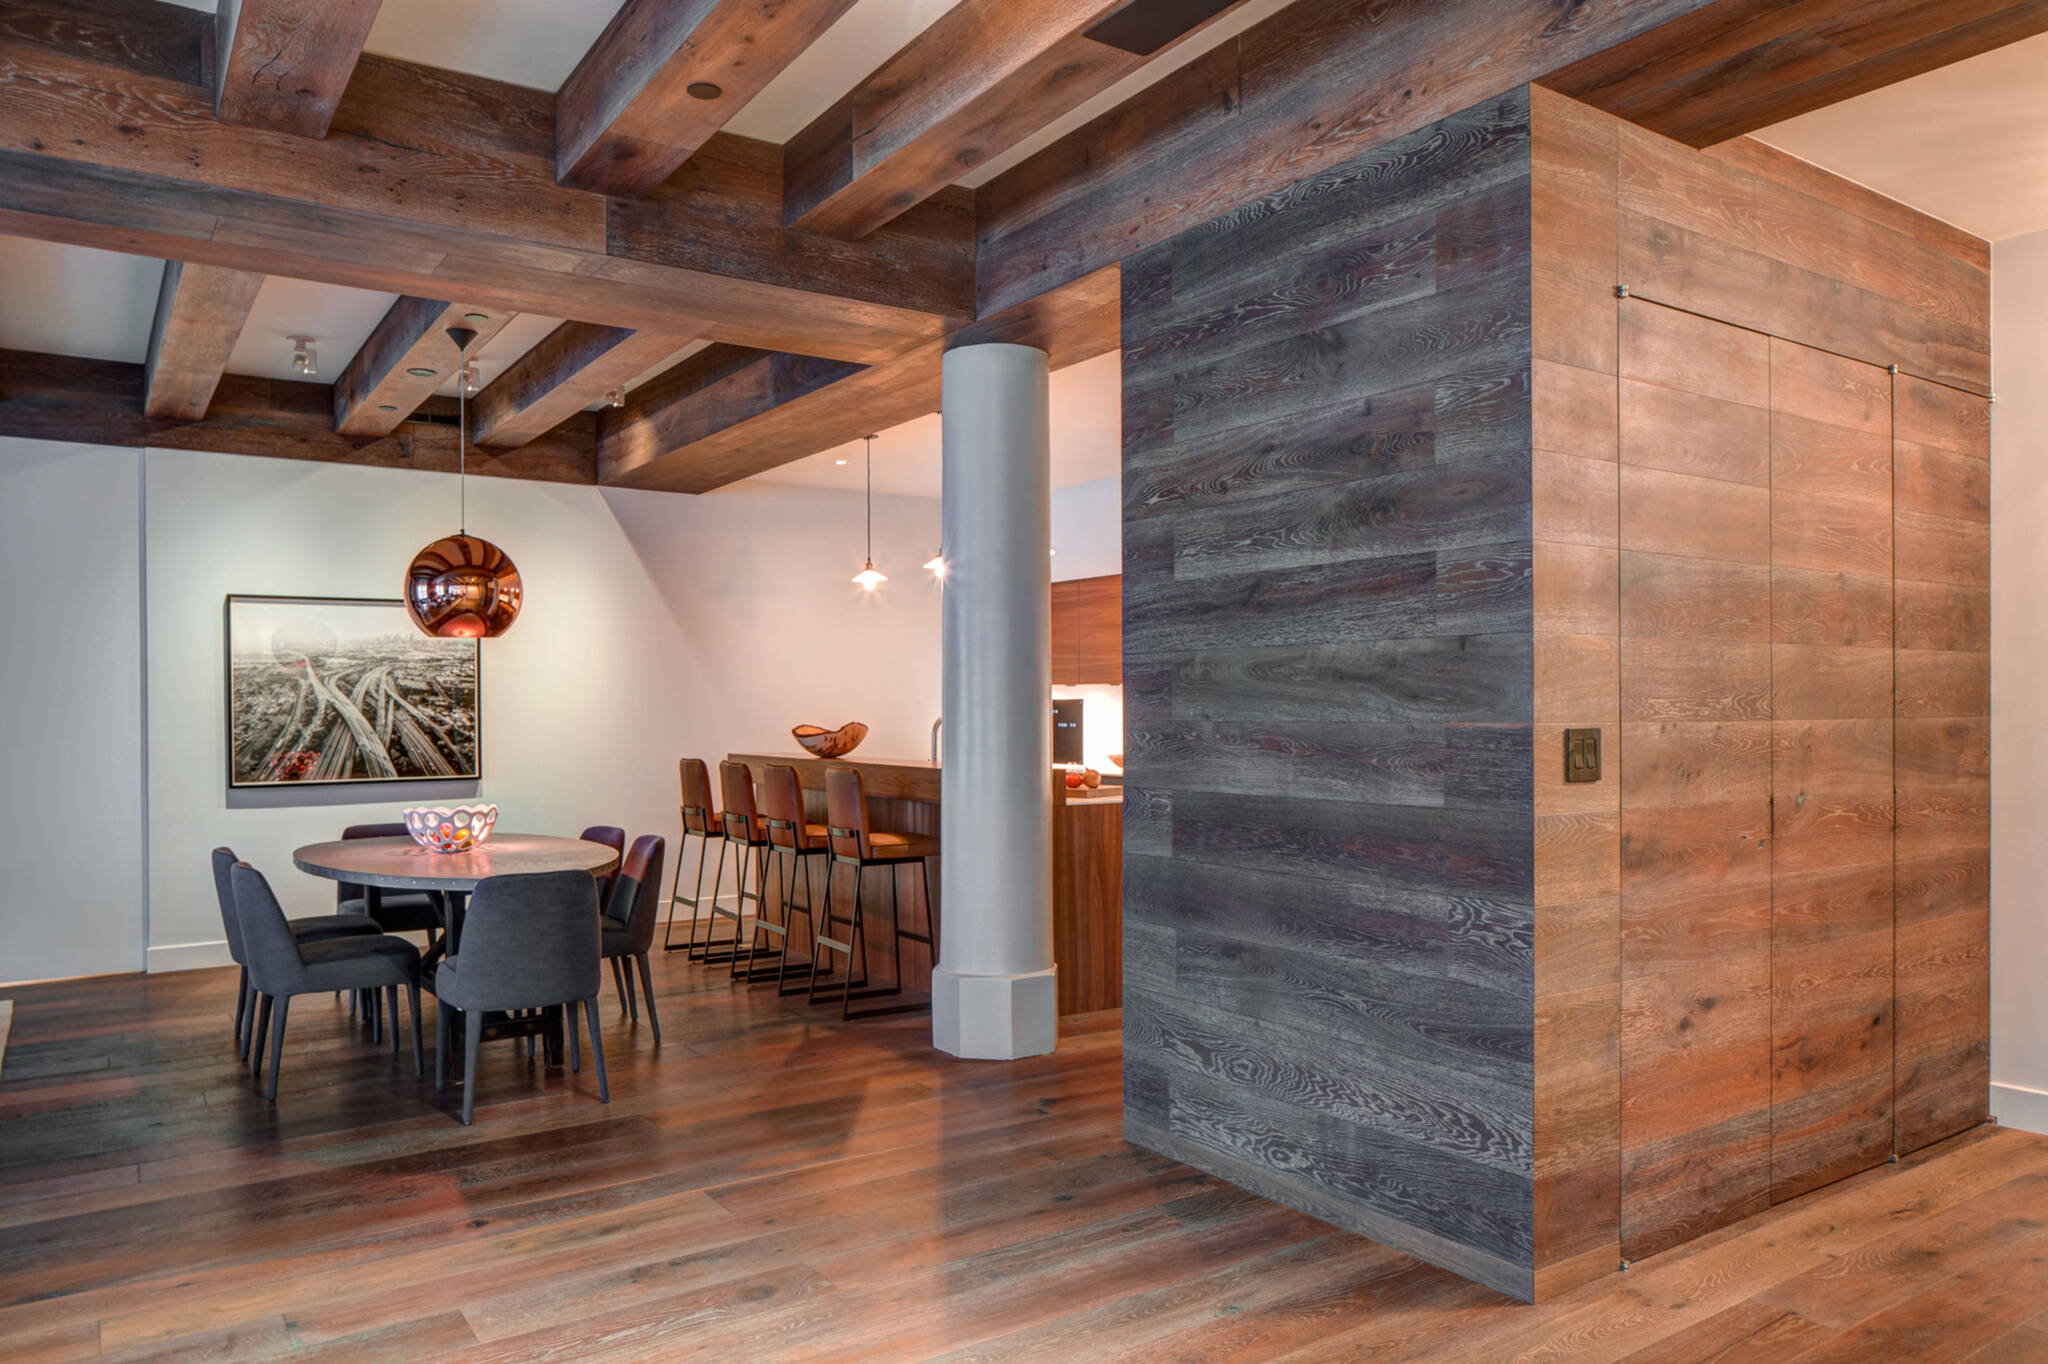 Dining area of the loft renovation project in Union Square, New York City designed by the architecture studio Danny Forster & Architecture